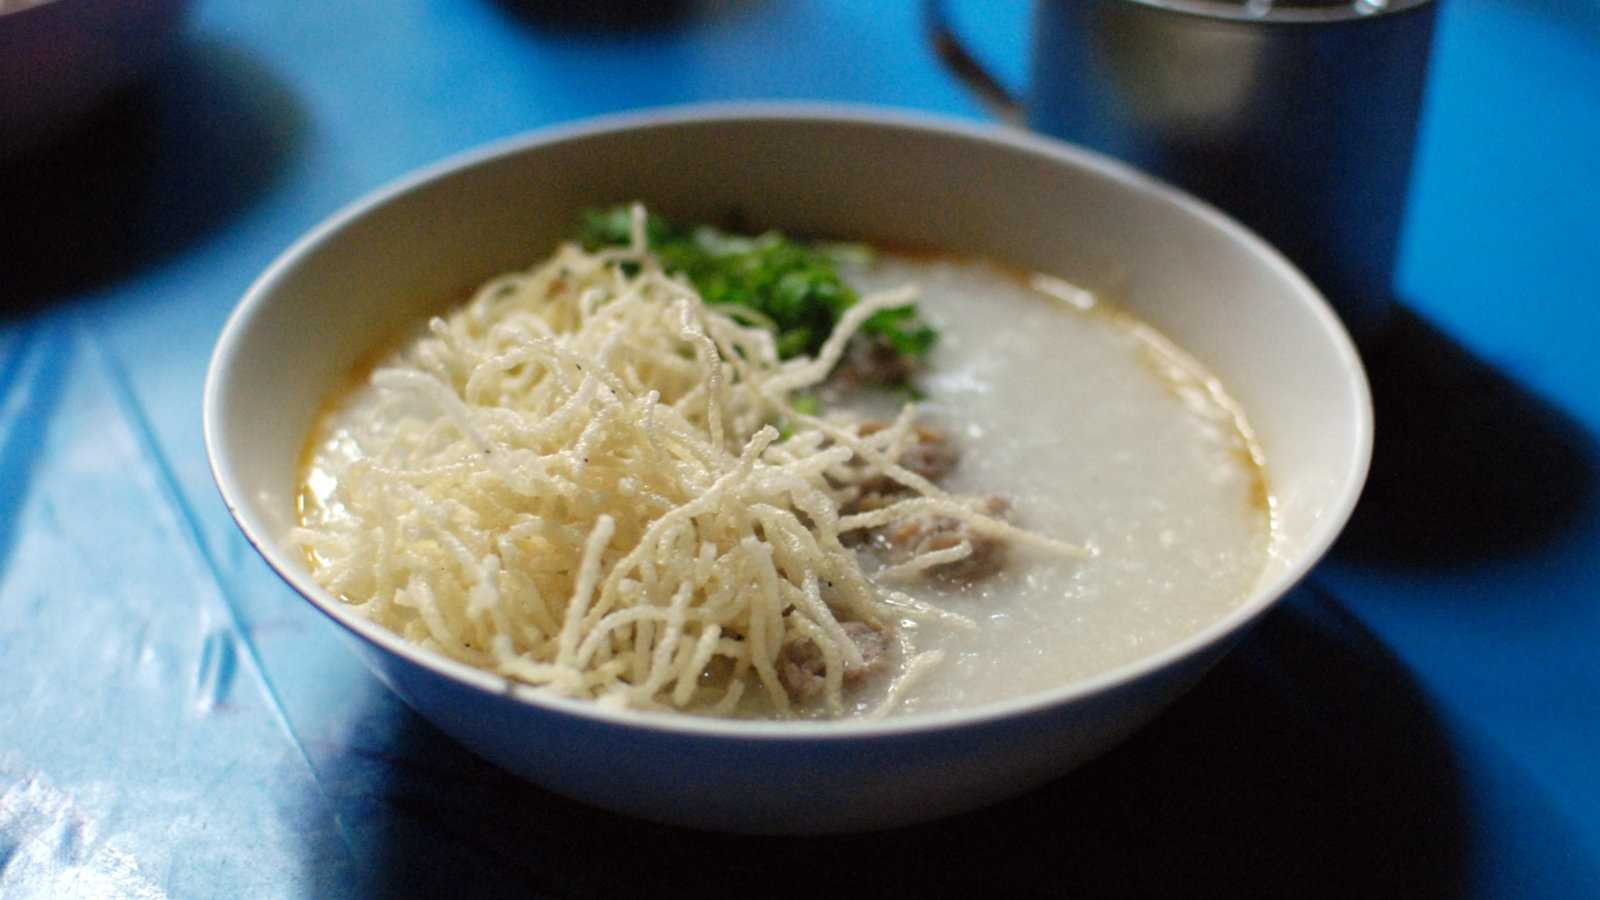 Jok is the Thai version of a rice porridge or congee, and usually served for breakfast